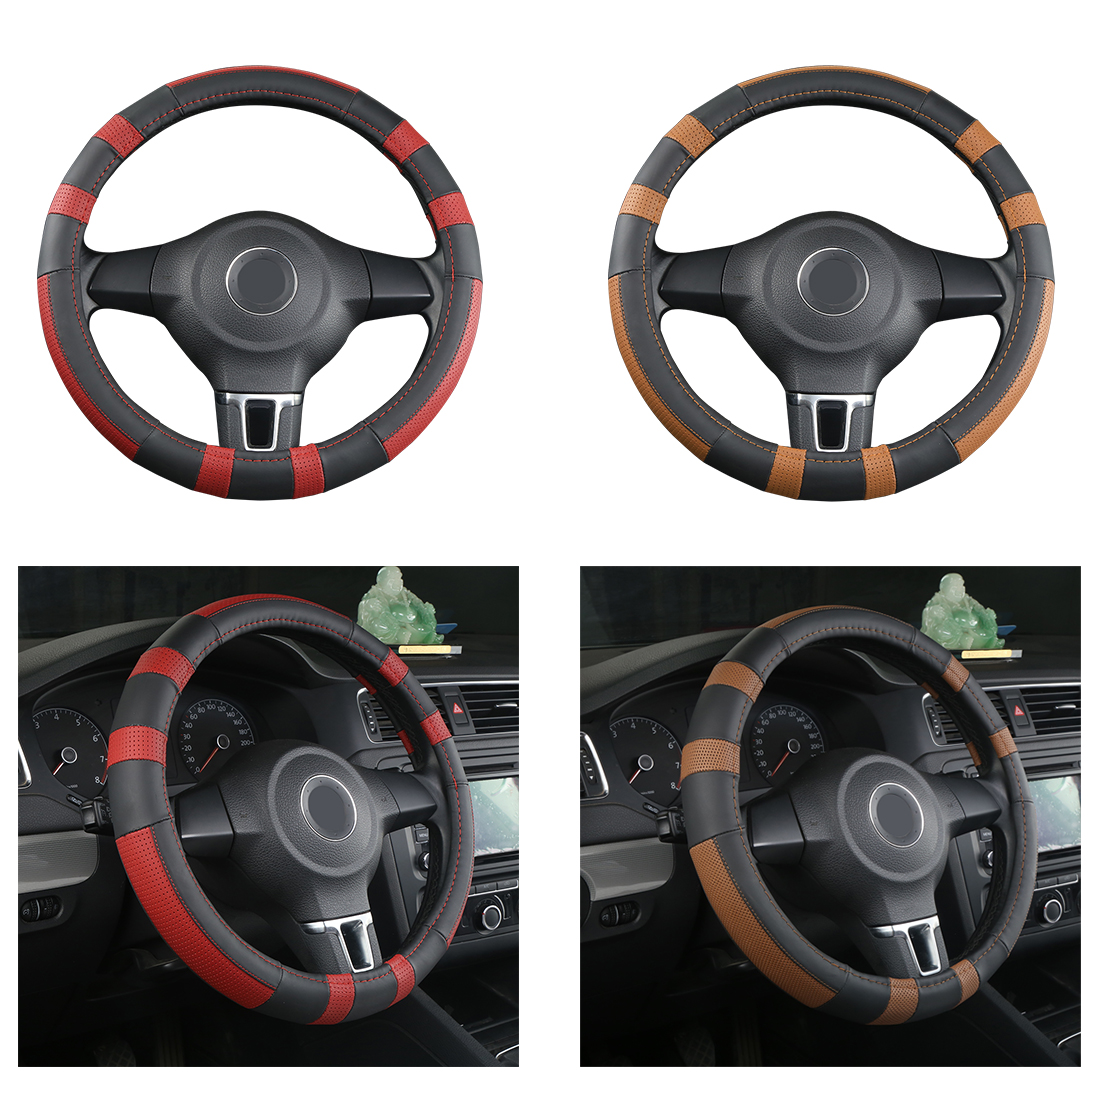 Dewtreetali 38cm Leather Car Steering Wheel Cover Steering-wheel Protector Car-styling For Ford Focus 2 VW Chevrolet Nissan